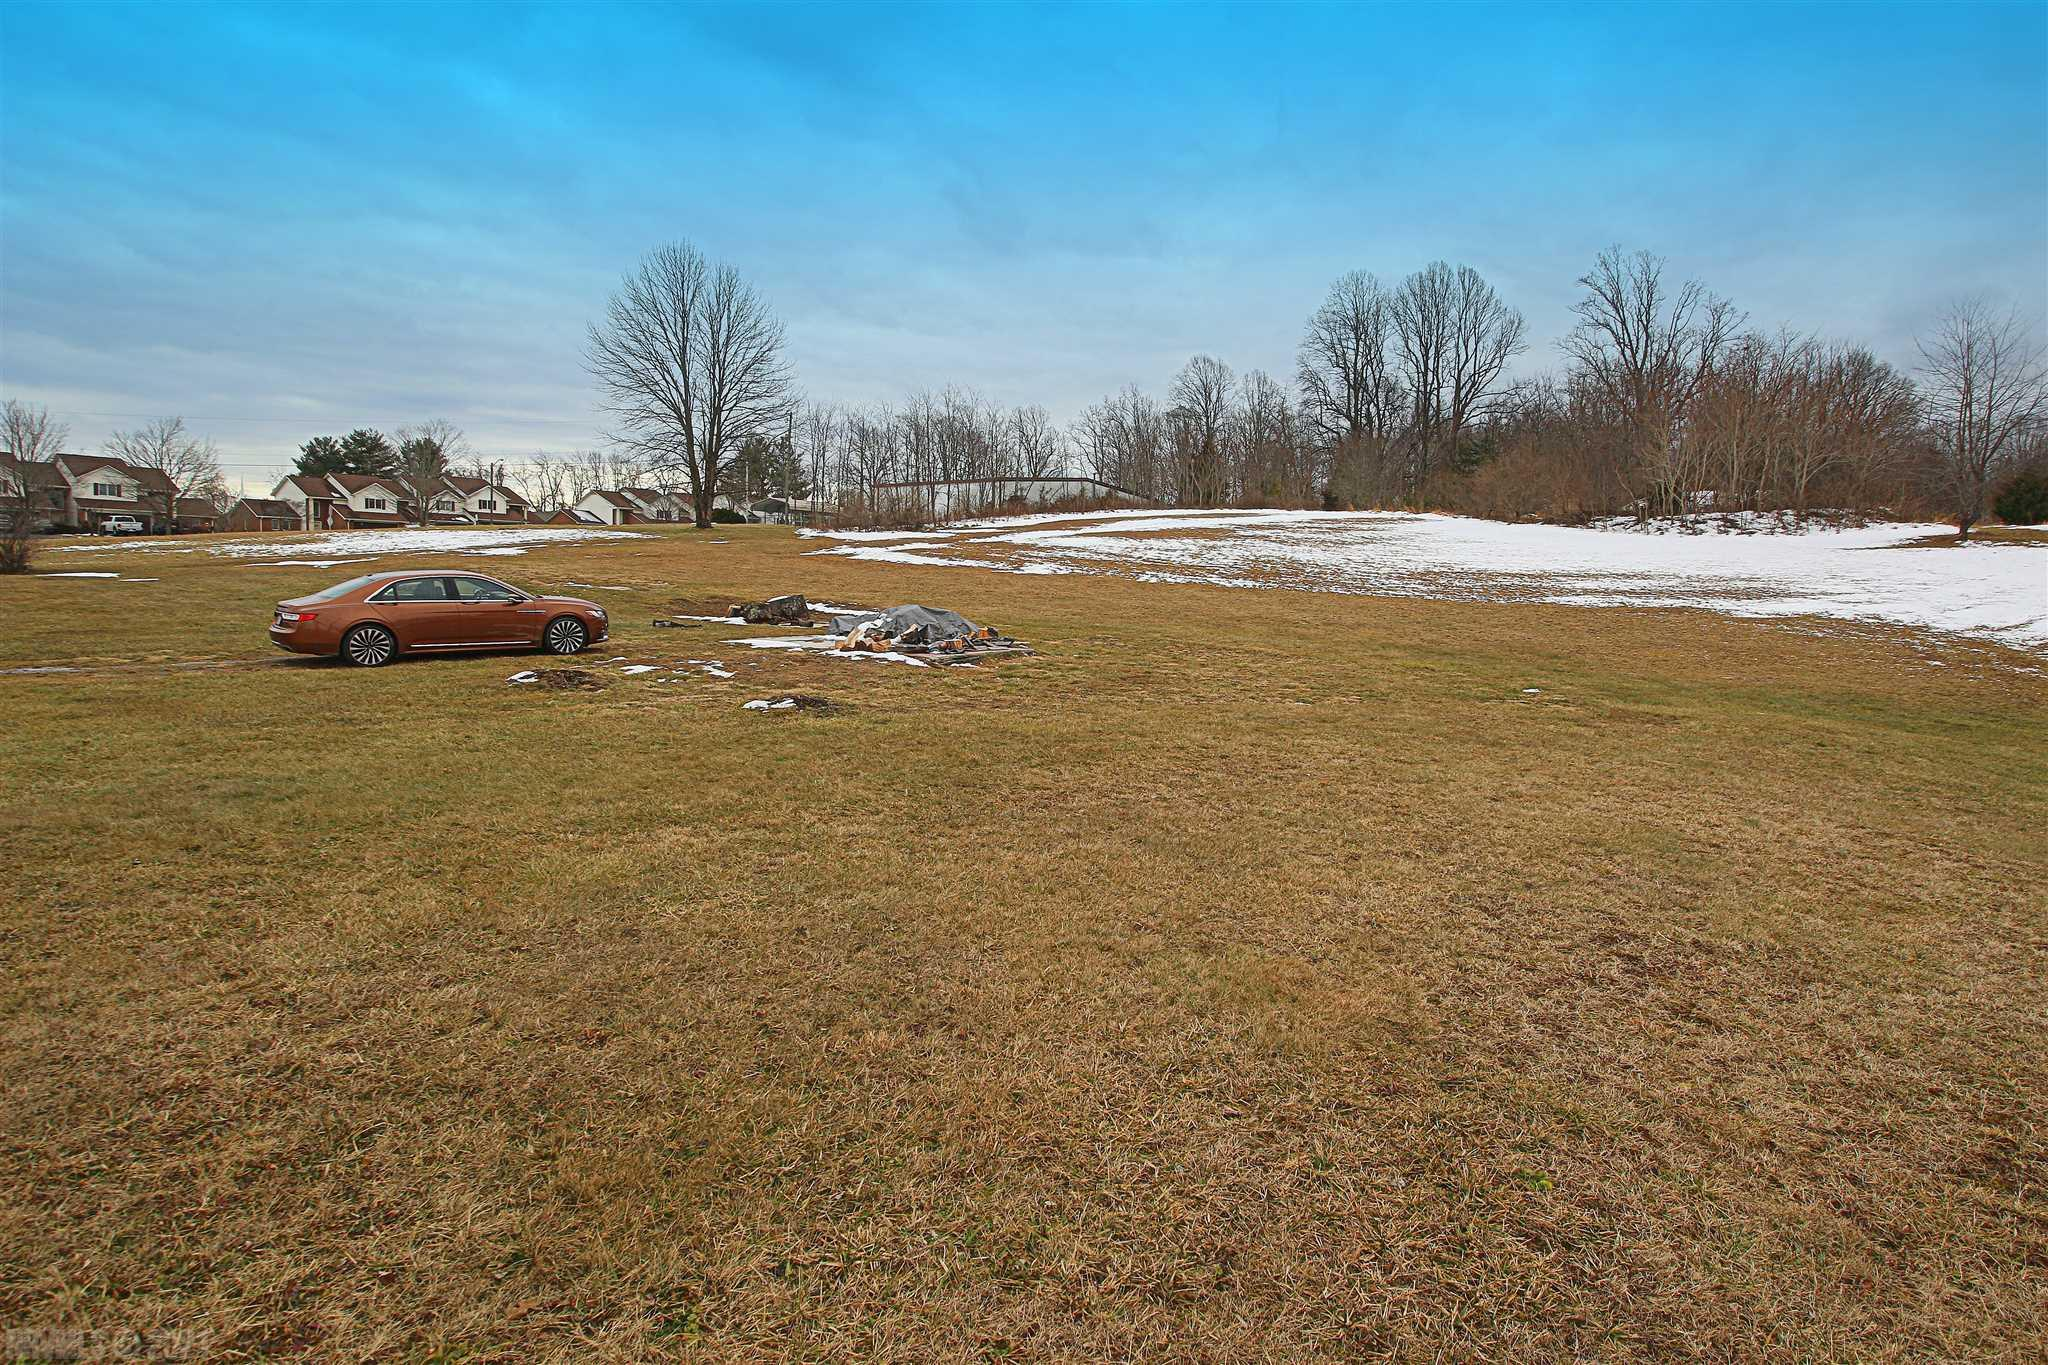 Commerical Land Zoned B-3: Perfect for Developing and Multi Business Destination Hub. with Motels, Eateries, Convenience Store, Hybrid Plug Center to accommodate all those hybrid vehicles soon to be dominating Interstate I-81. Microbrewery. etc. etc.